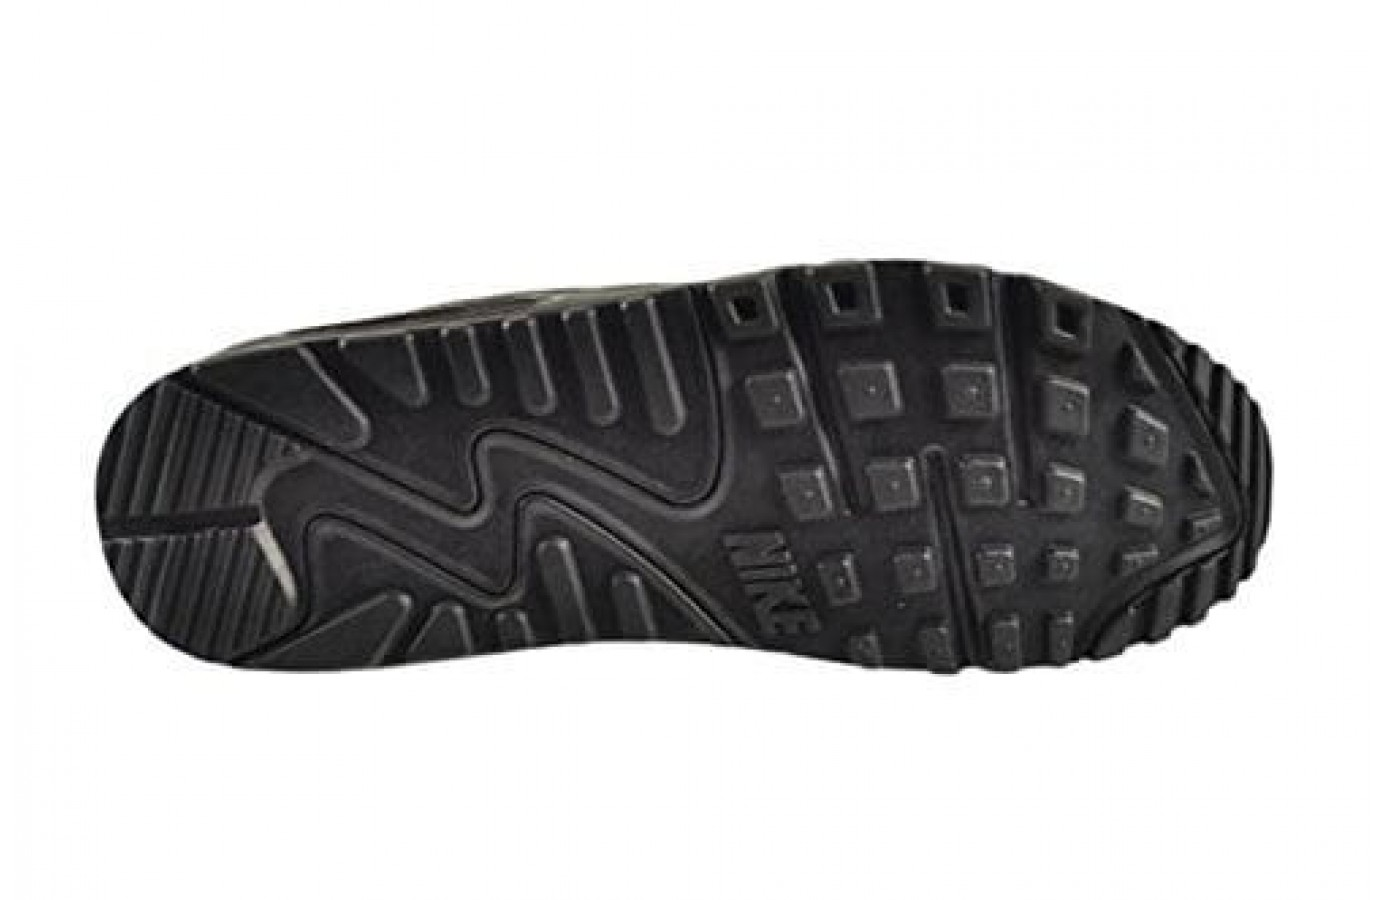 The waffle designed durable rubber outsole provides good grip for the runner.